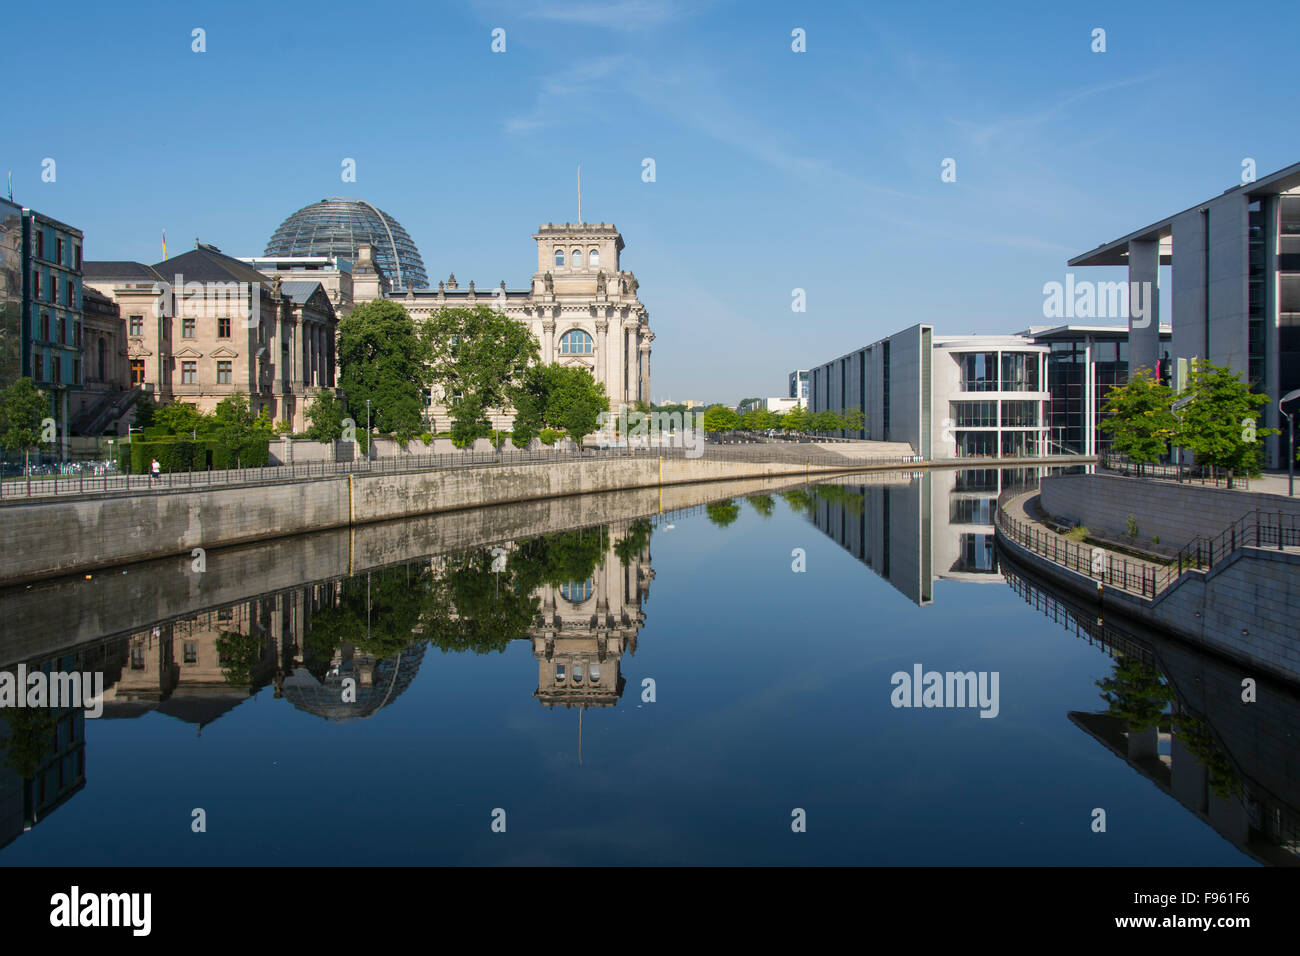 Reichstag building, a historical edifice in Berlin, Germany - Stock Image